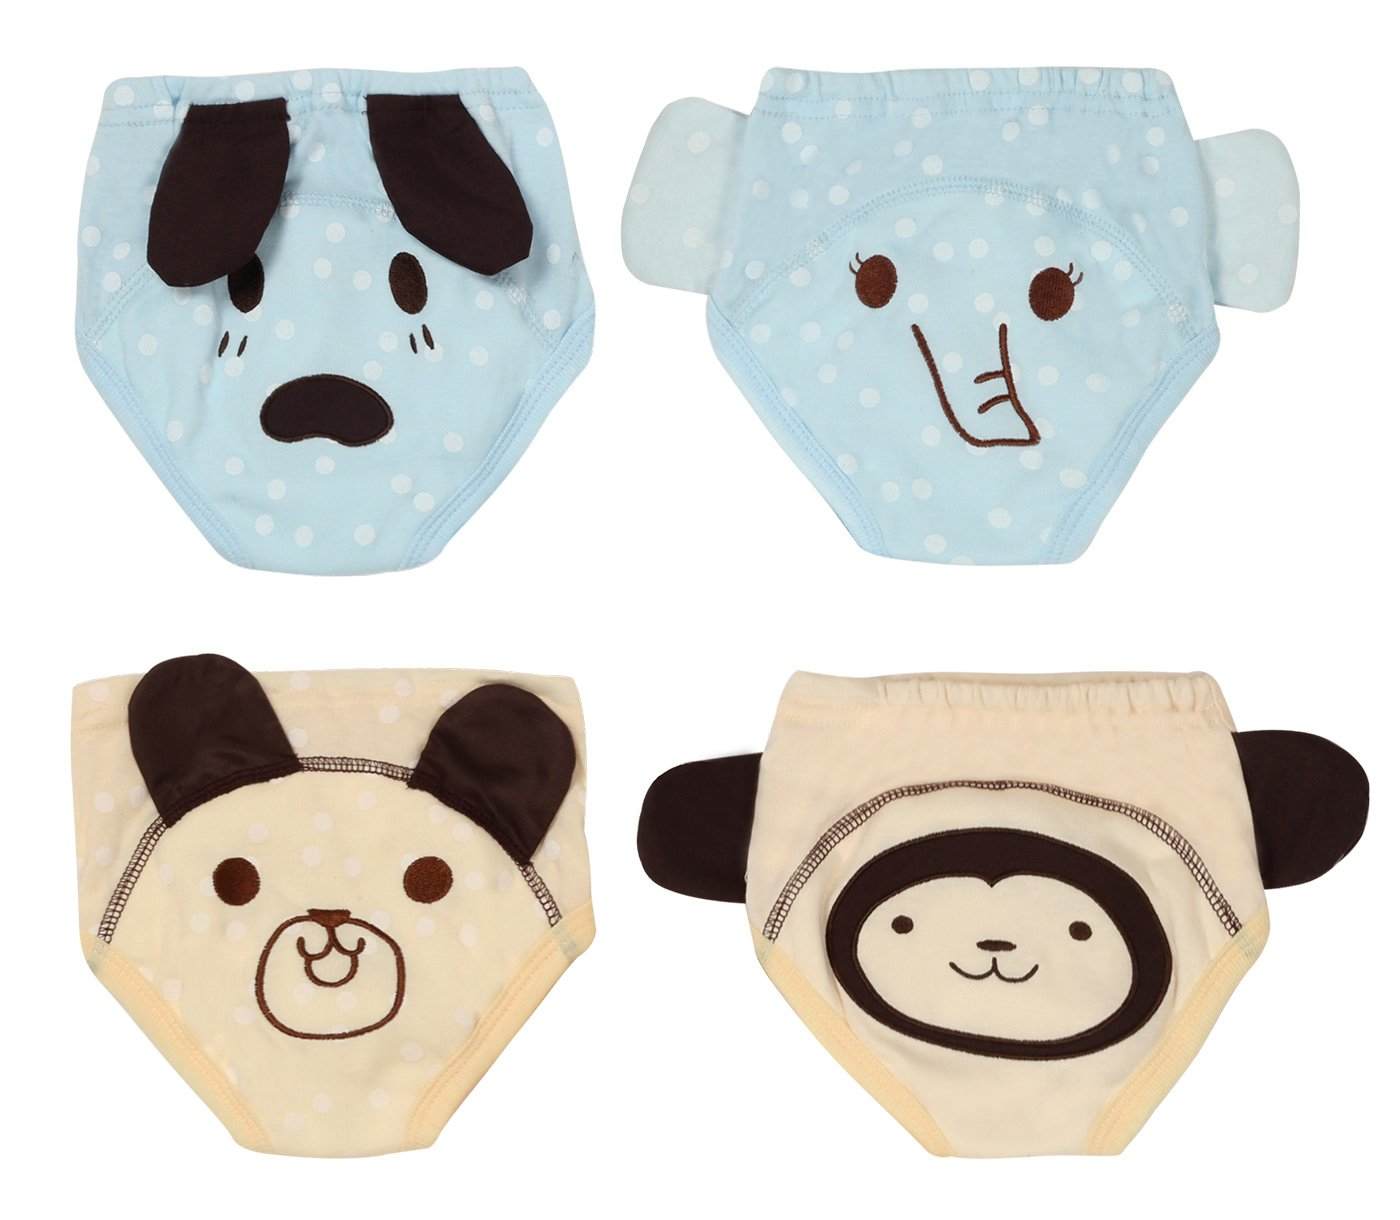 Baby Girls Boys 4 Pack Toilet Training Underwear Pants Soft Cotton Nappy Cloth Diaper Rabbit Pig Frog Fox Size 100 Joyo roy JR001016